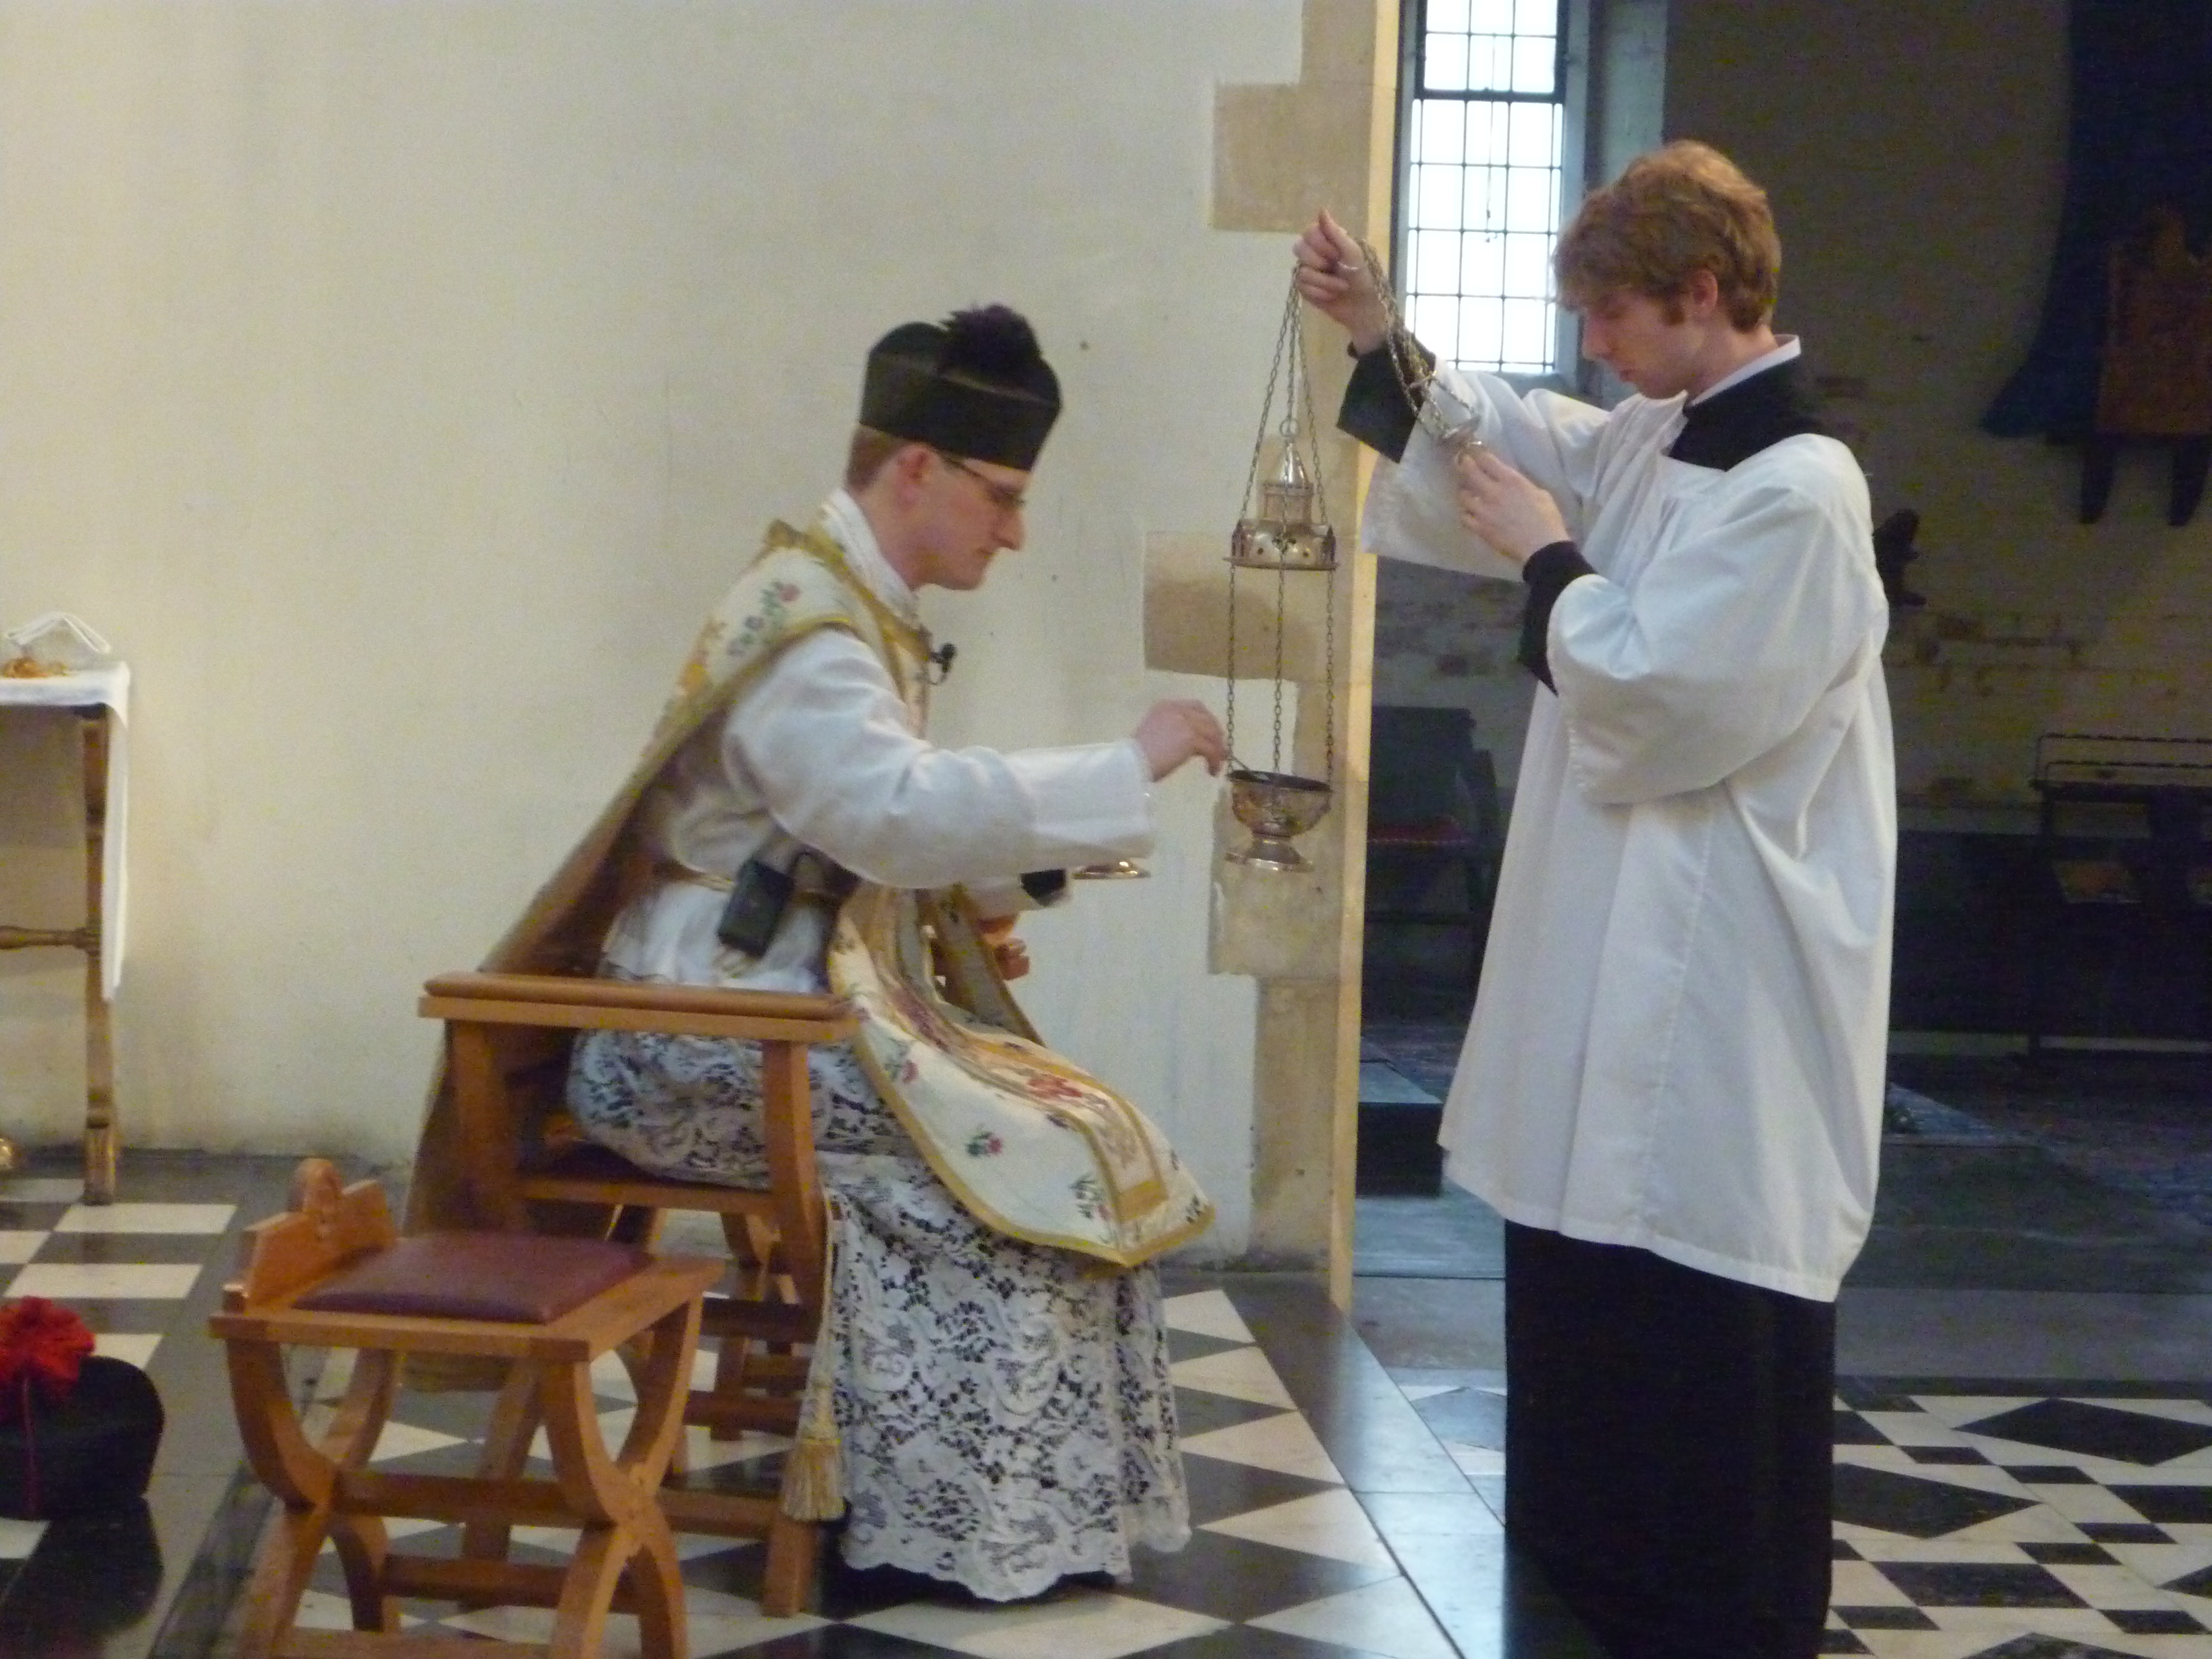 Here is Euan Grant, serving at the liturgy.